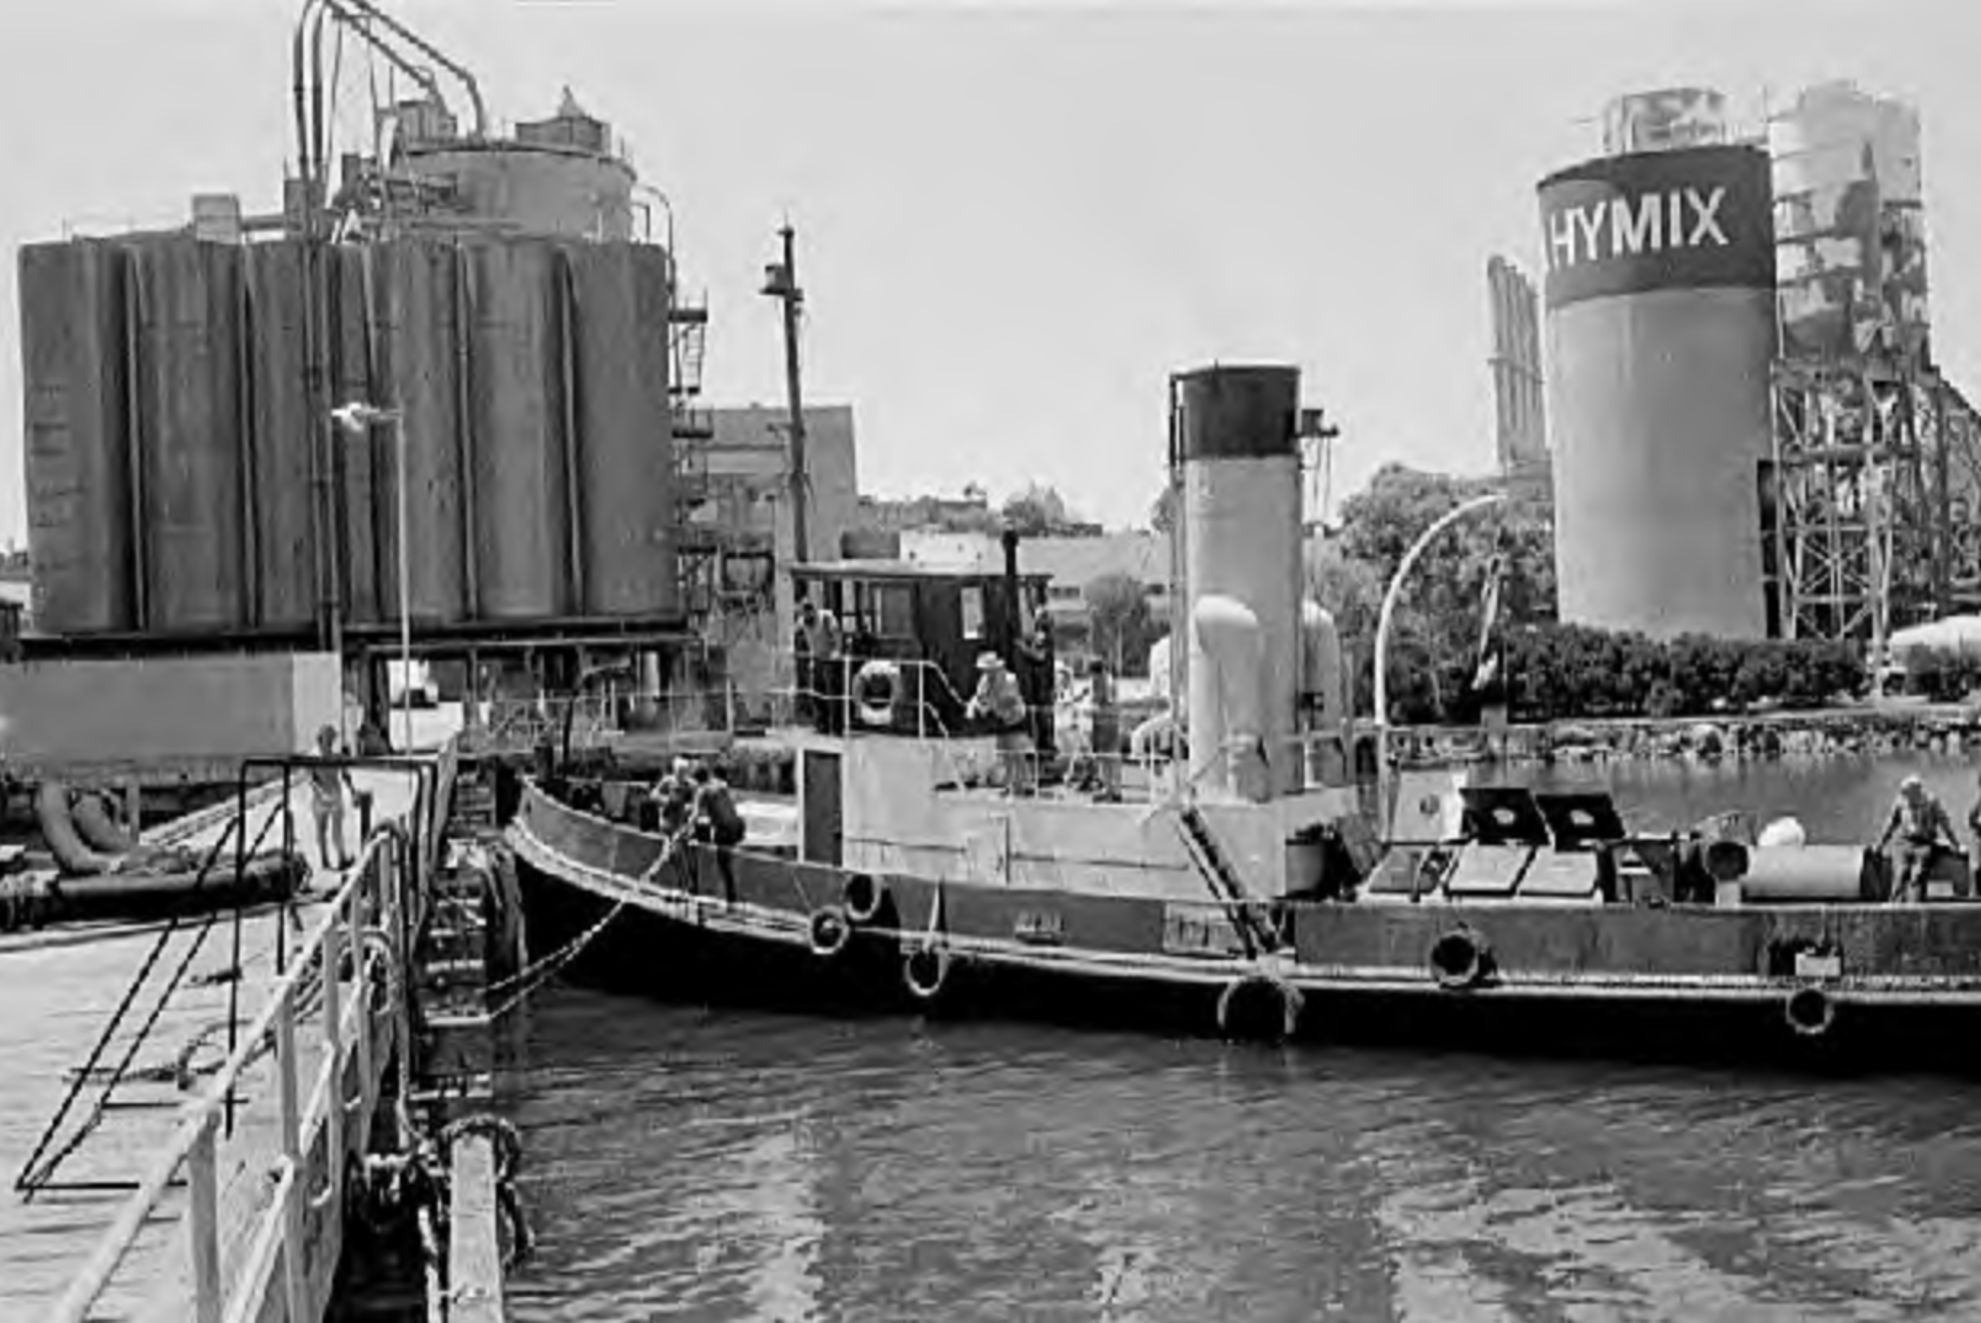 Wattle at Blackwattle Bay 1979, Graeme Andrews Collection